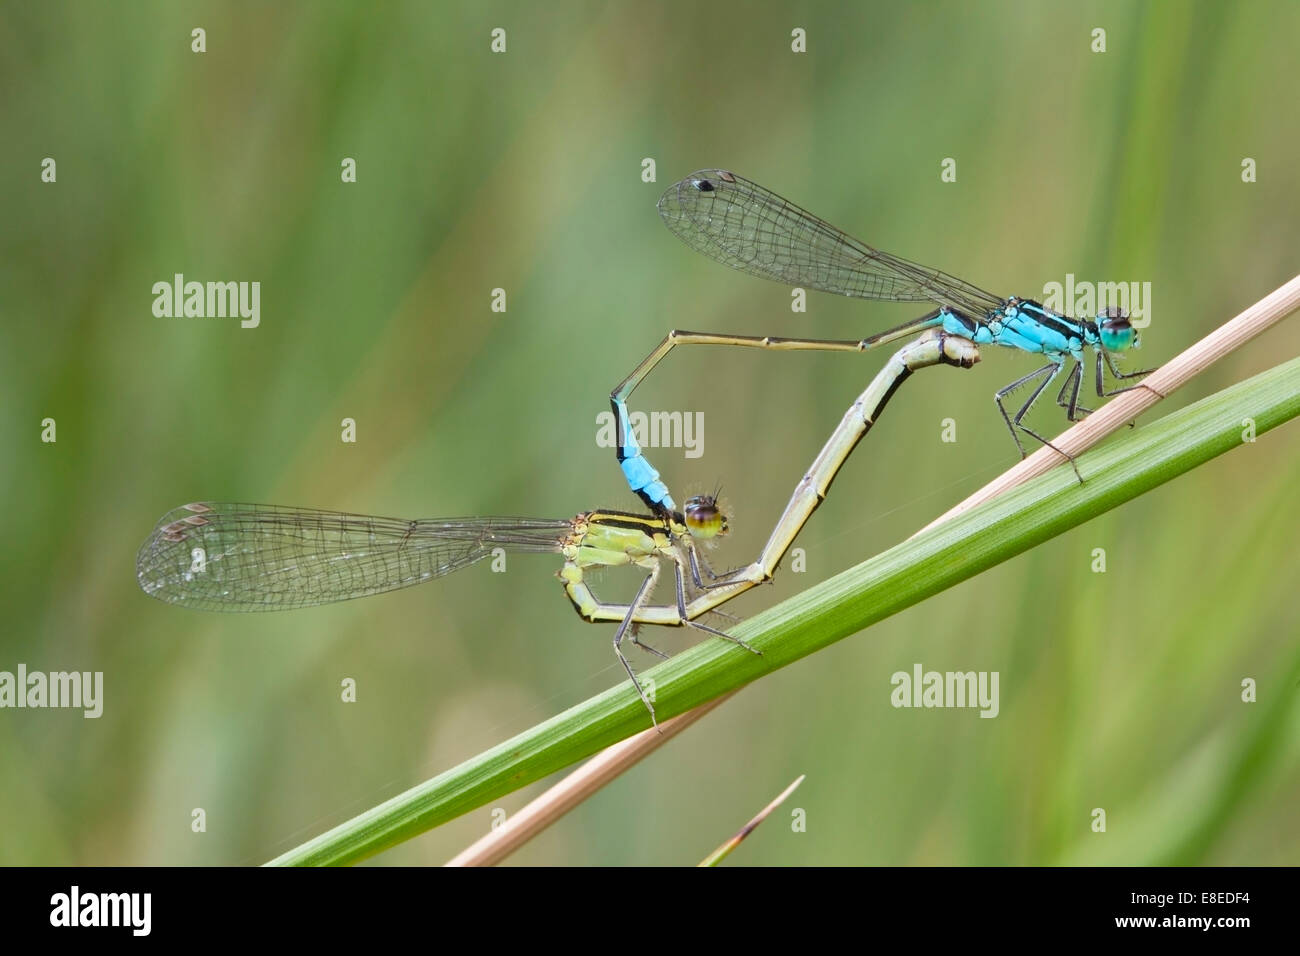 pair of blue-tailed damselflies mating while perched on a grass stem, Camargue, France. - Stock Image